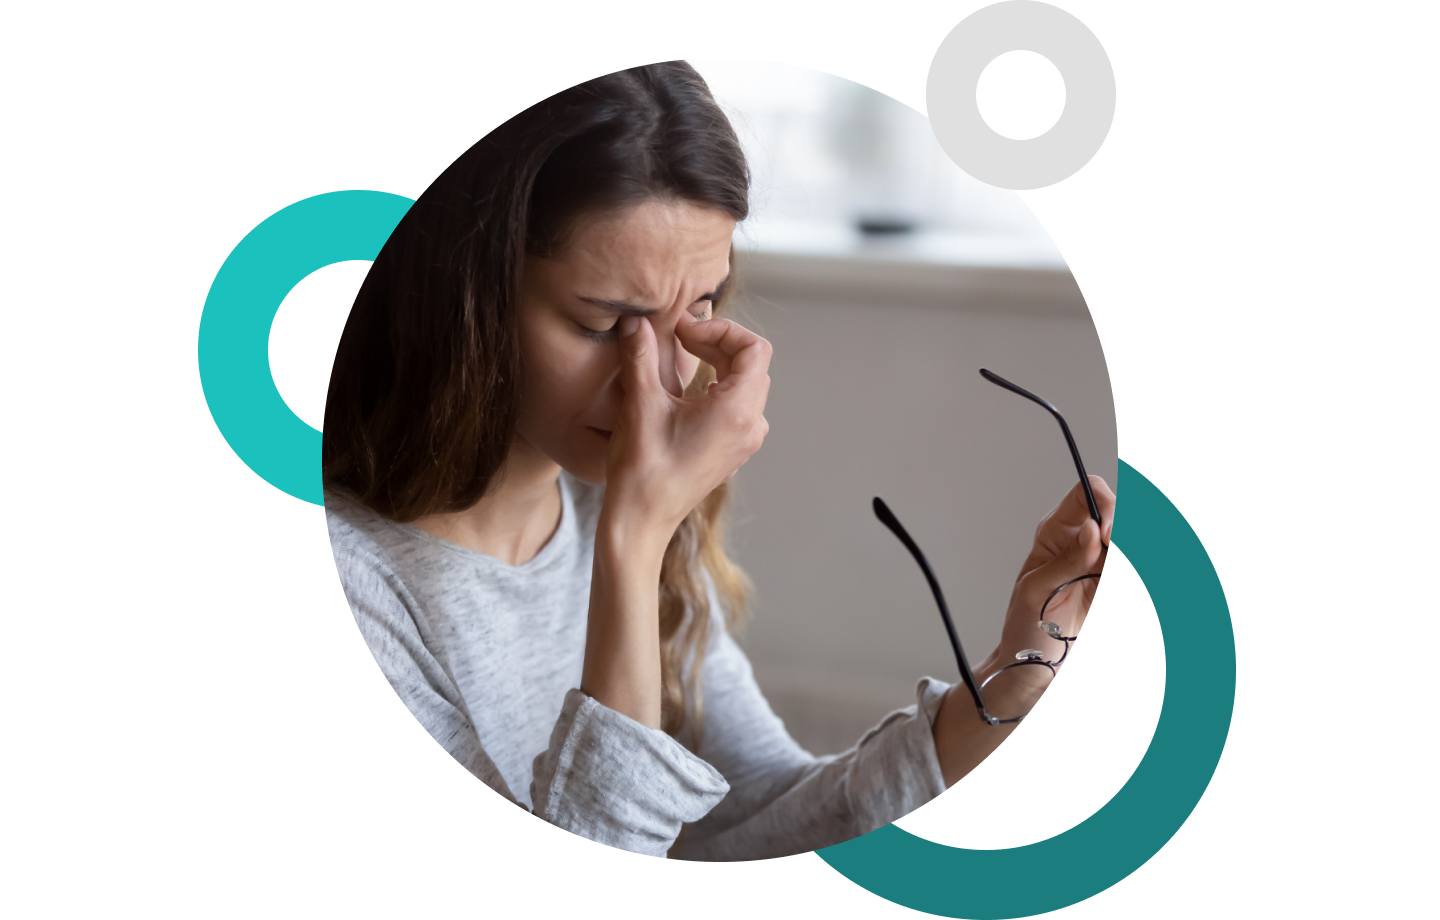 woman-fatigued-from-telehealth